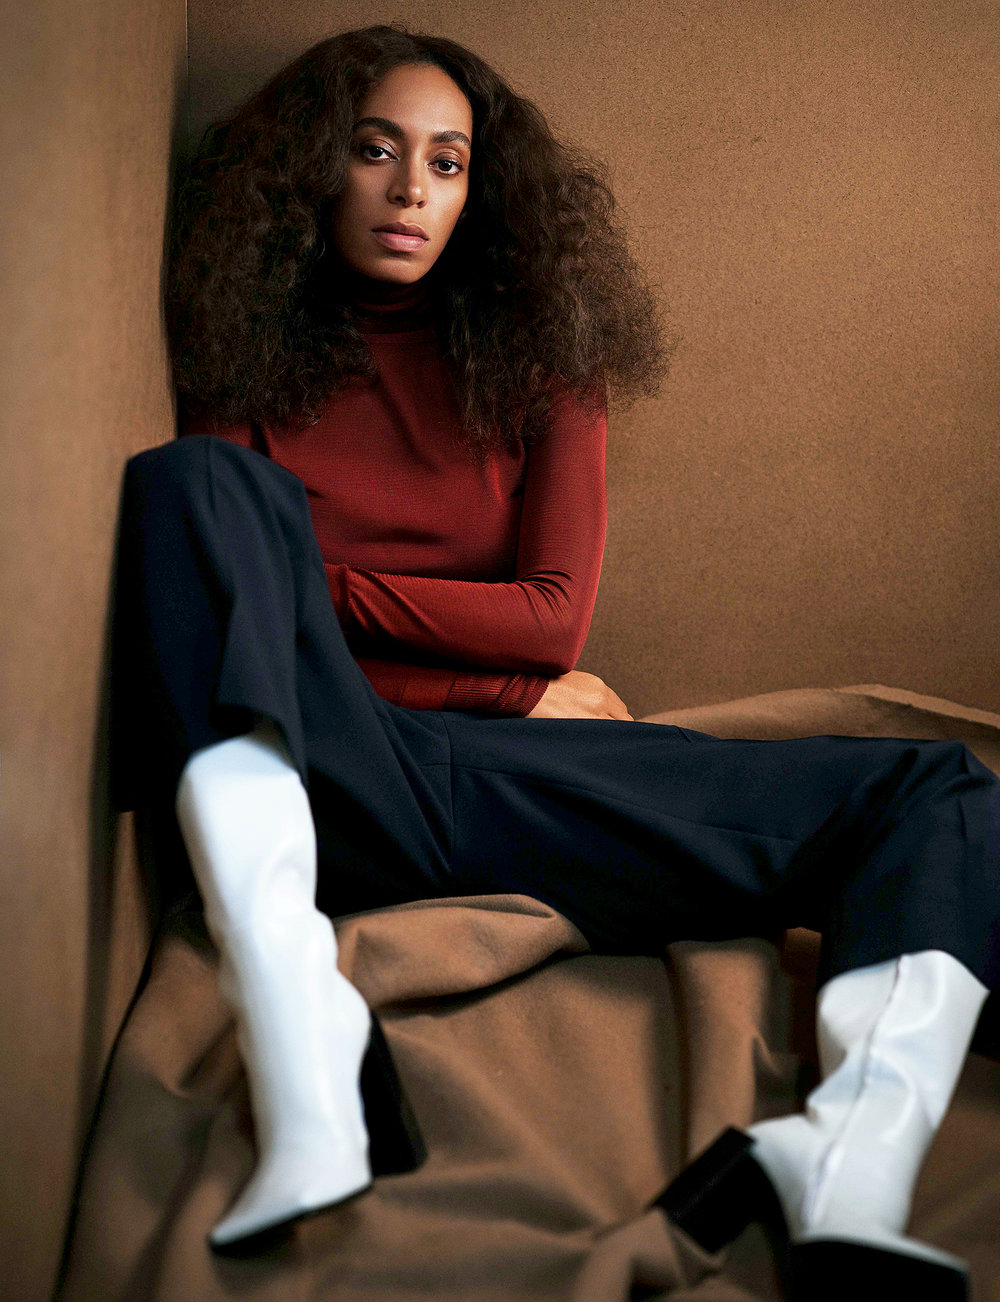 Solange Knowles - American singer, songwriter, model, activist, and actress. 2017 Glamour Women of the Year